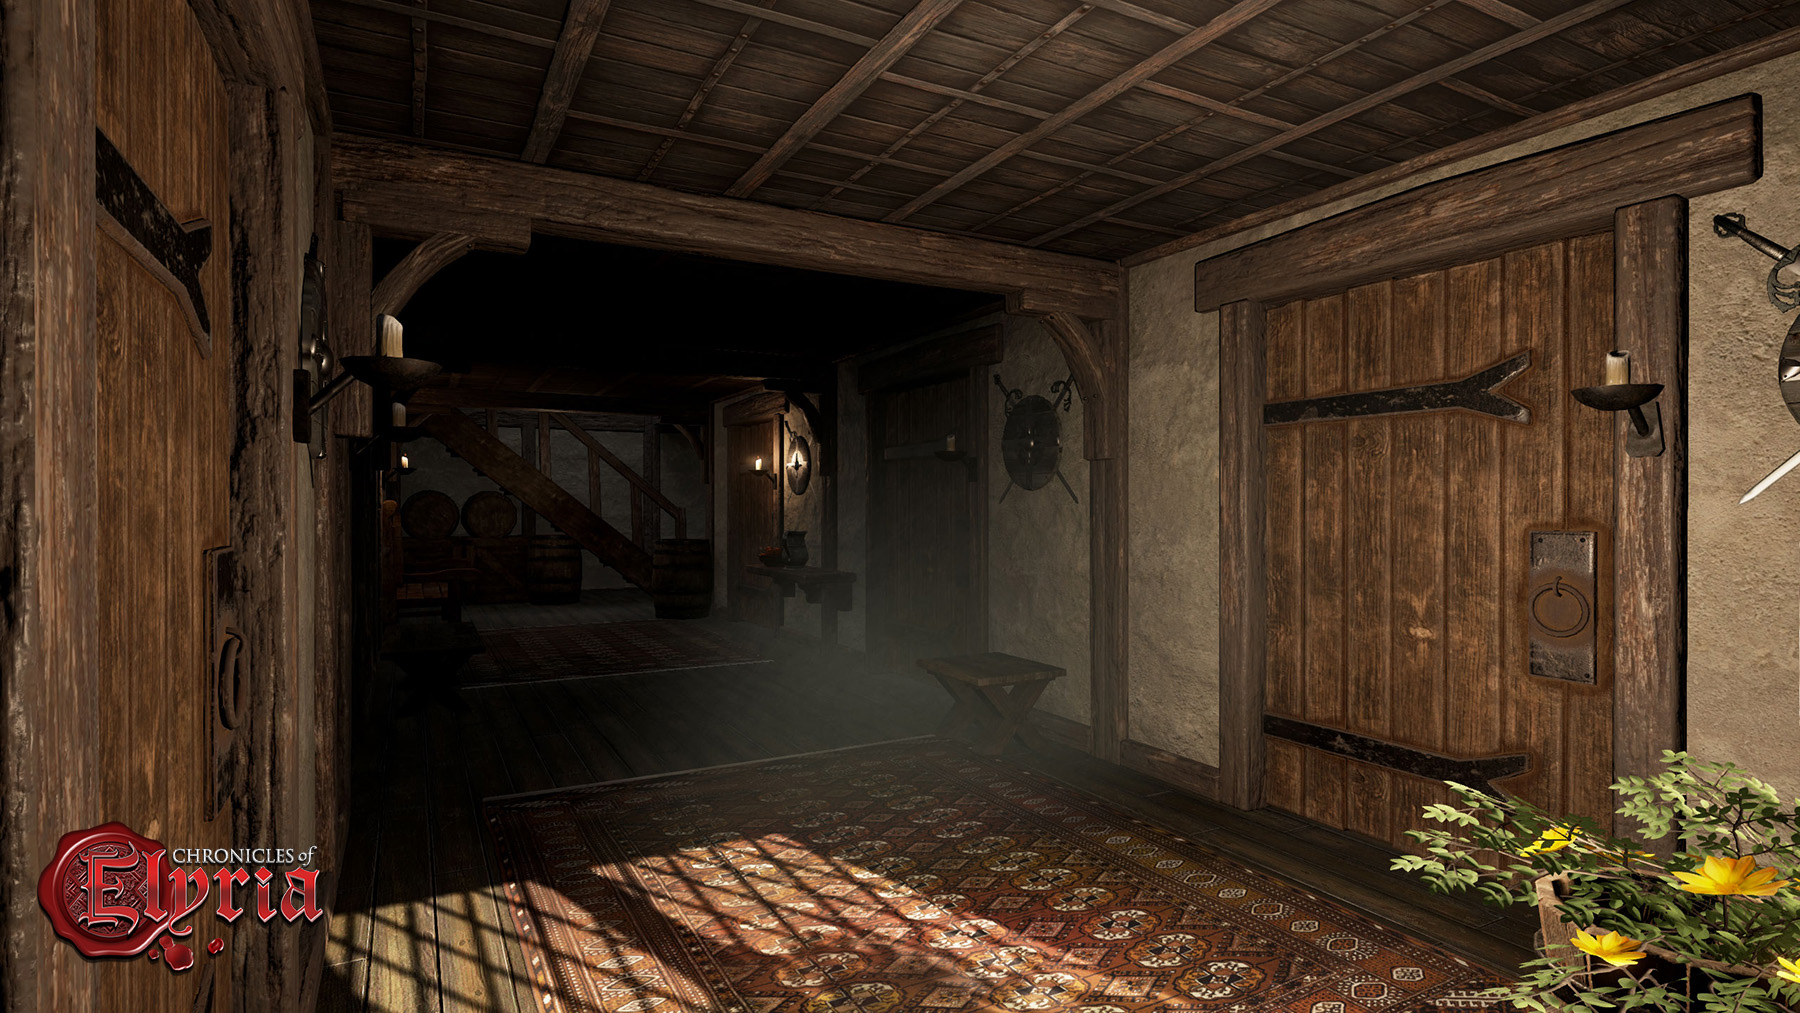 In-game screenshot of the interior entryway of an inn